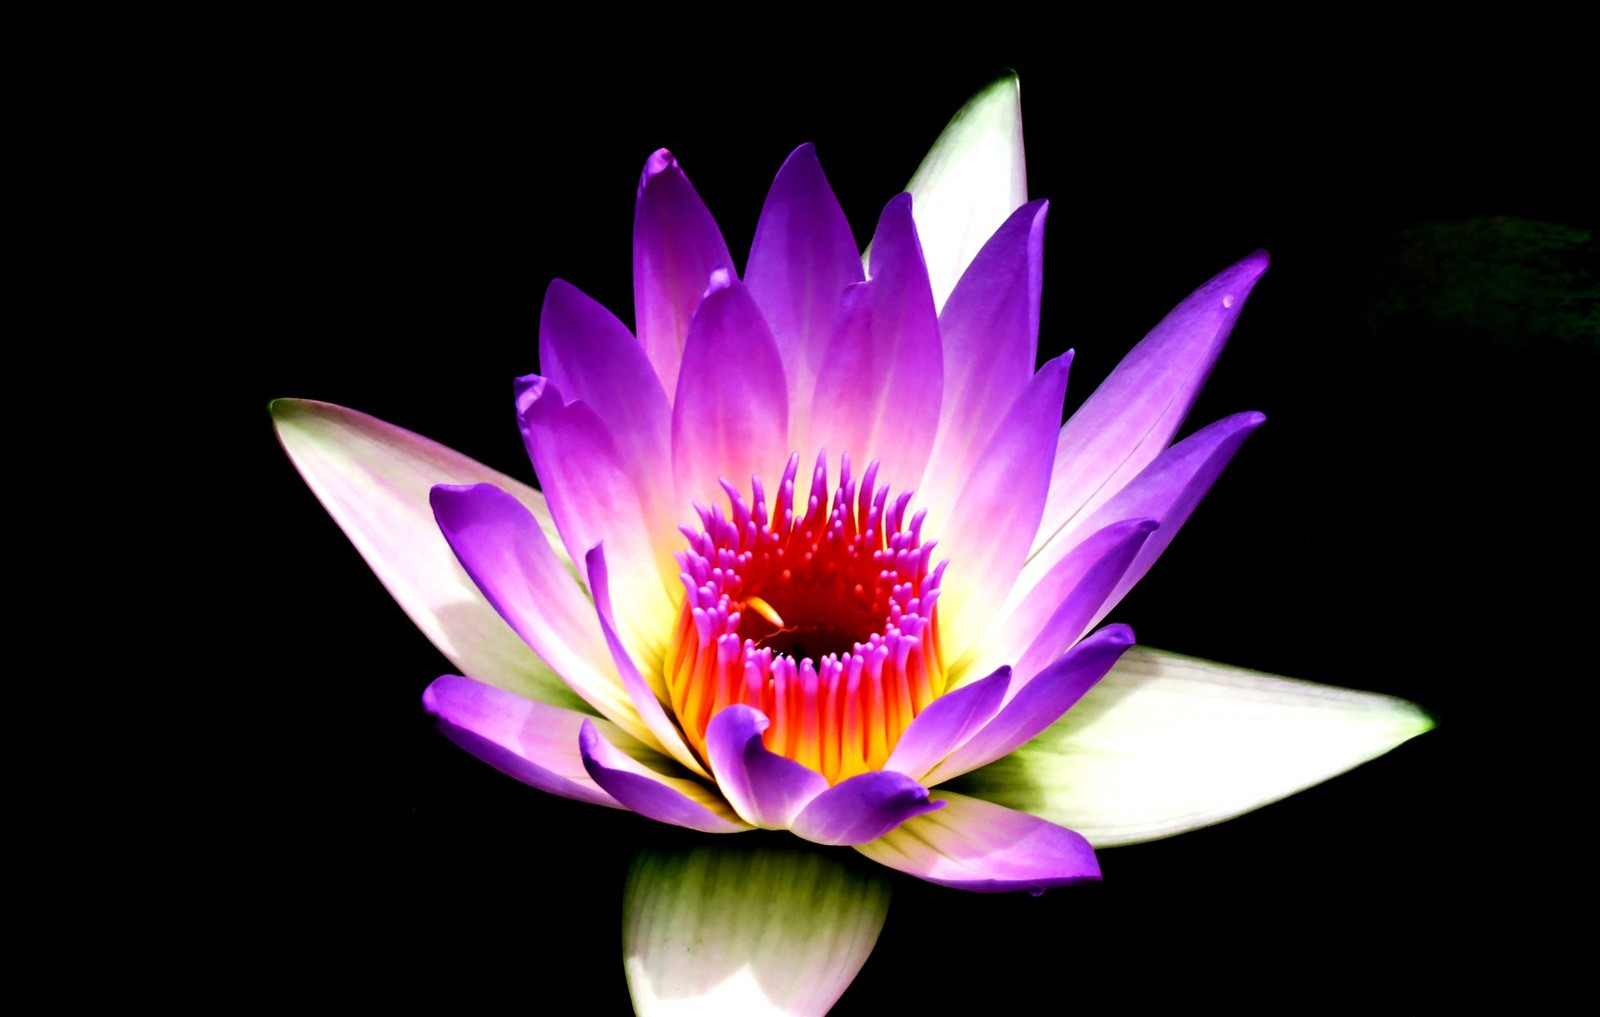 Lotus flower meanings and lotus symbolism on whats your sign lotus tattoo ideas and meanings izmirmasajfo Choice Image